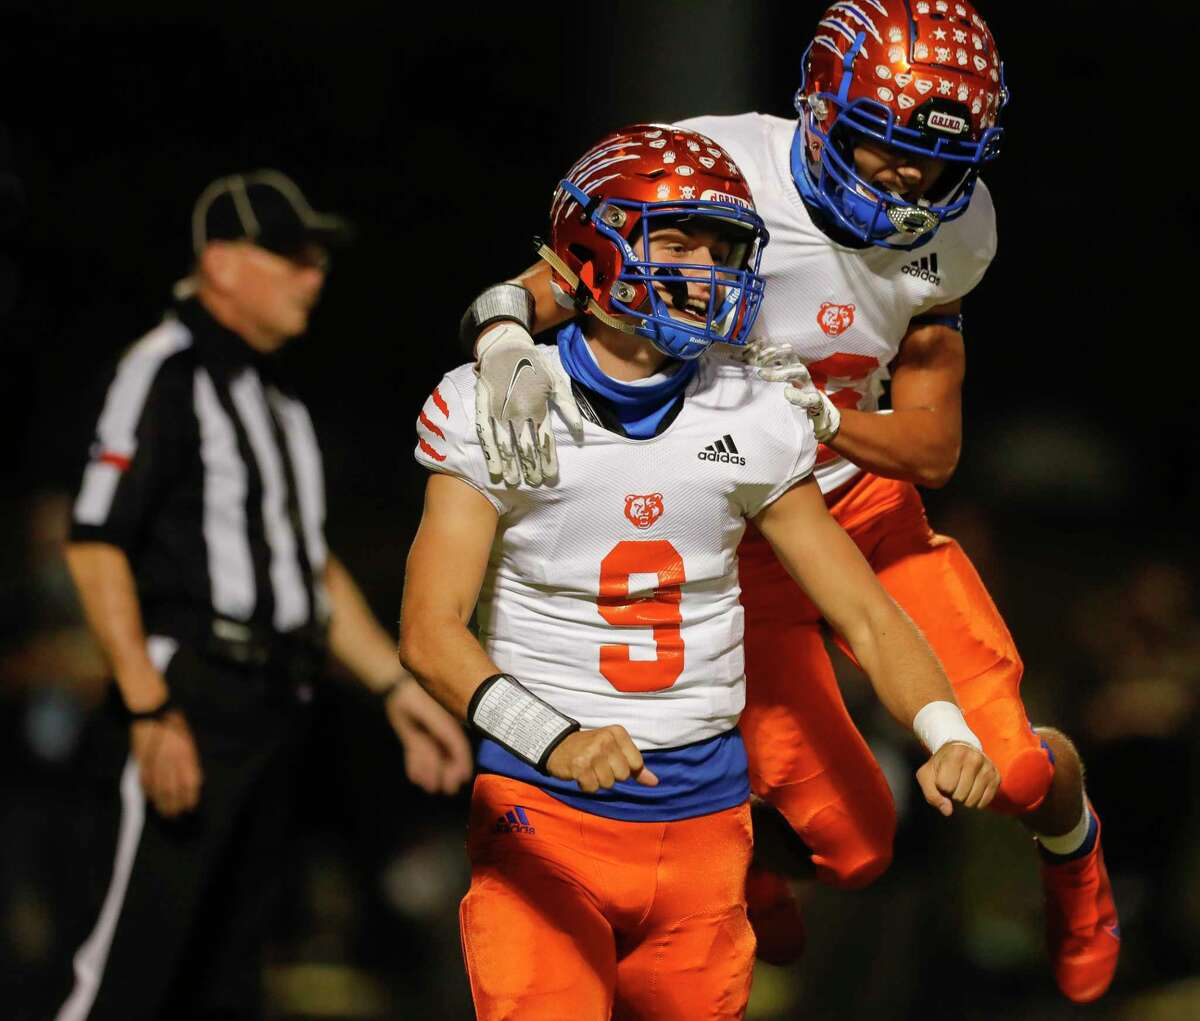 Grand Oaks quarterback James Holmon (9) reacts with wide receiver Seth Wright (16) after running for a 1-yard touchdown during the first quarter of a District 13-6A high school football game at Buddy Moorhead Stadium, Friday, Nov. 6, 2020, in Conroe.